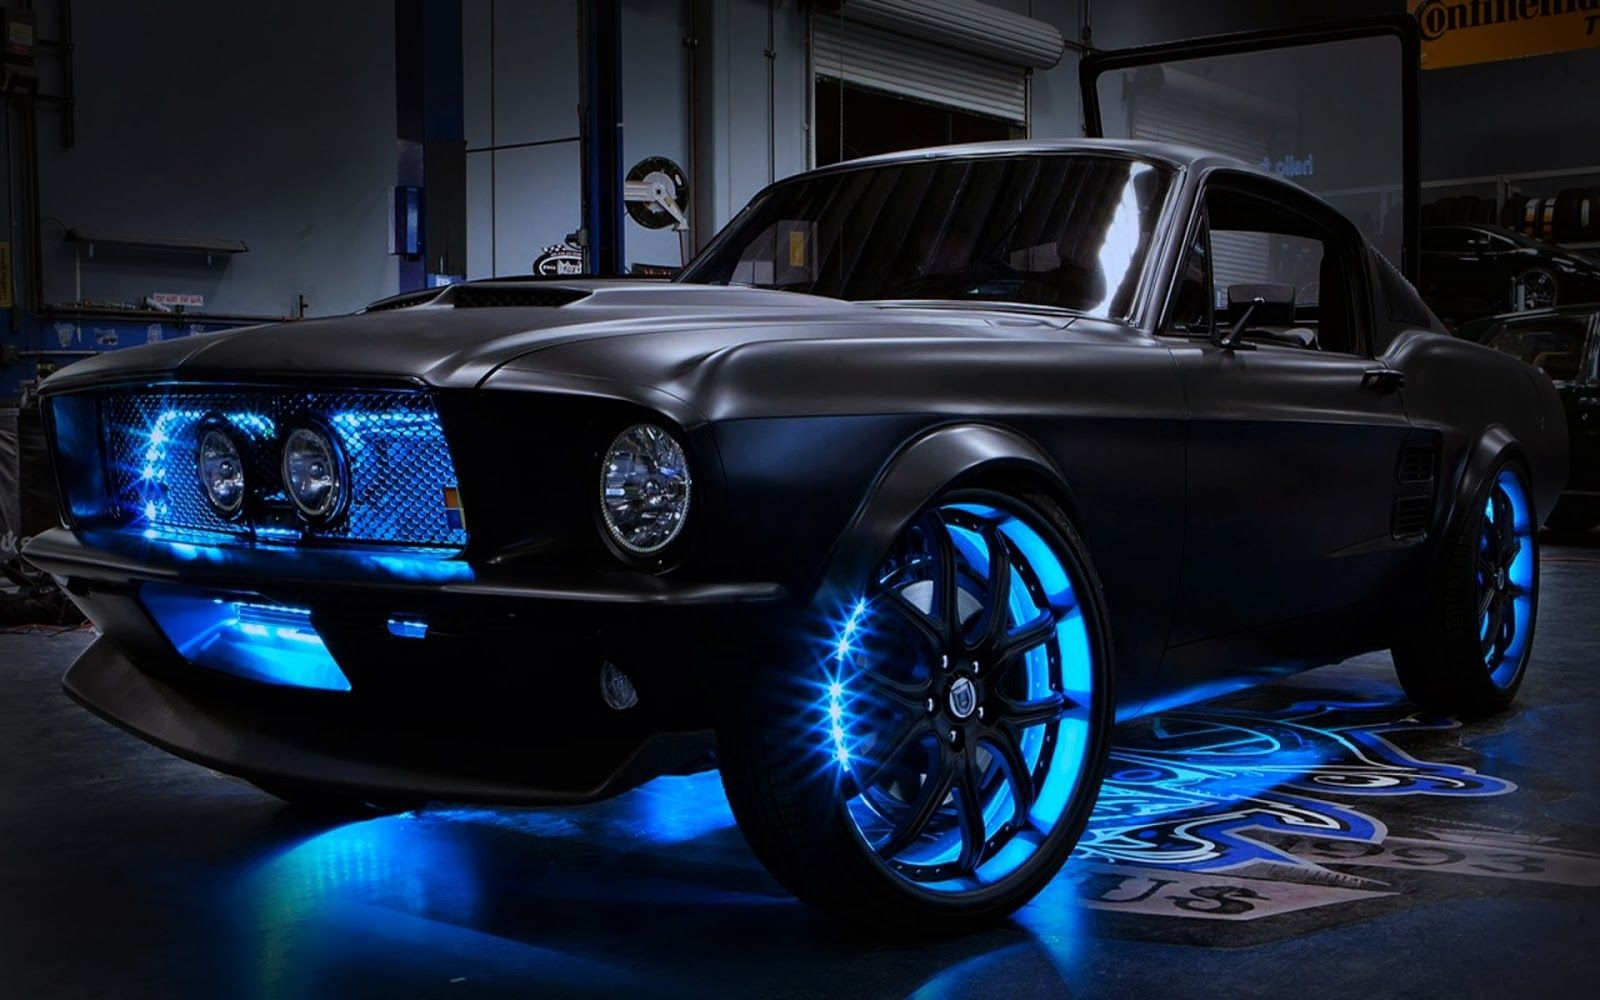 West Coast Customs took a 2012 Ford Mustang and retrofitted it with a 1967 Mustang fastback replica body. They painted the car matte black and decked it ... : the best ford car - markmcfarlin.com